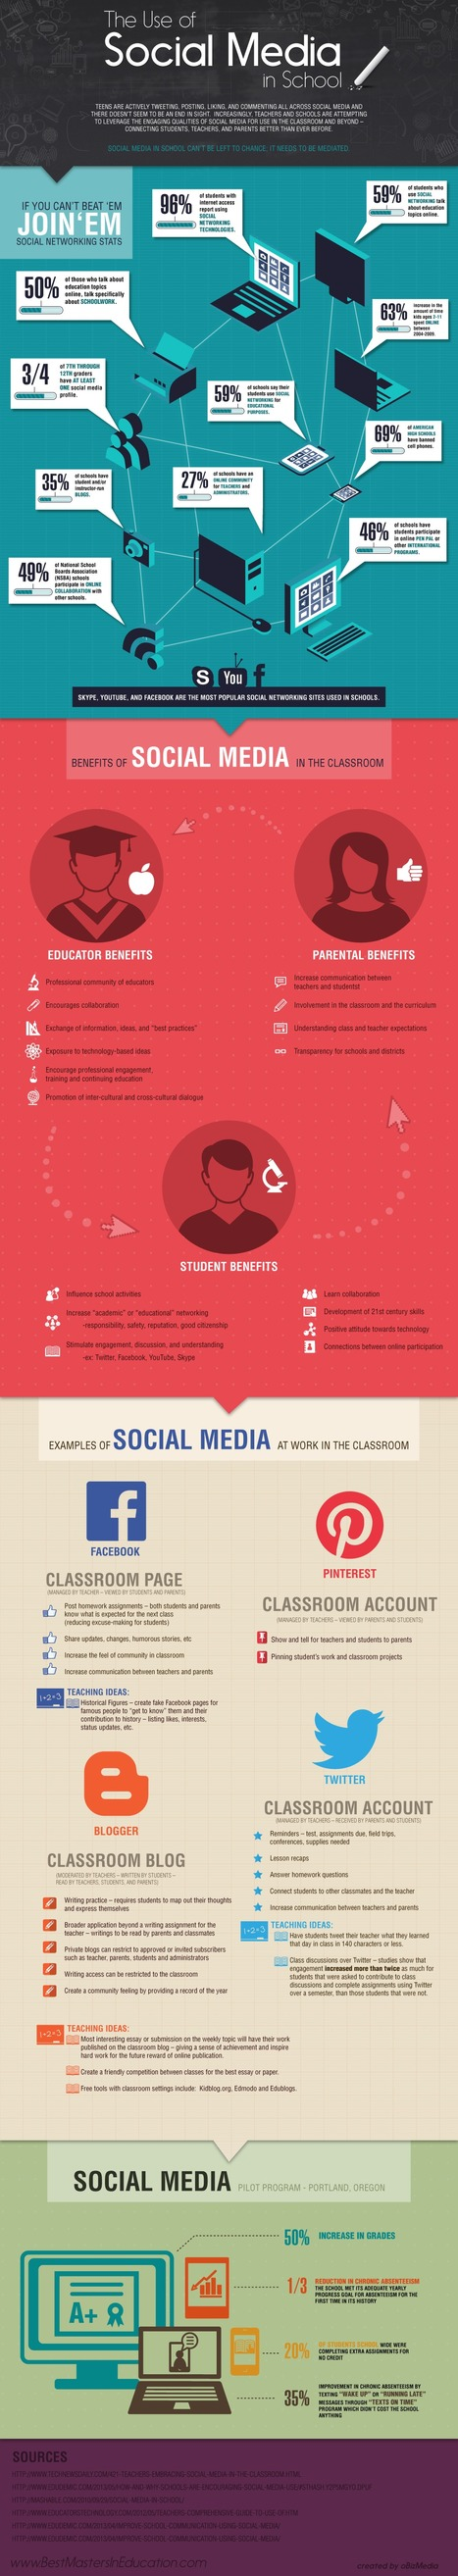 Social Media 101: Is There a Place For Social Media in Classrooms? [Infographic] | Literacias sec XXI | Scoop.it